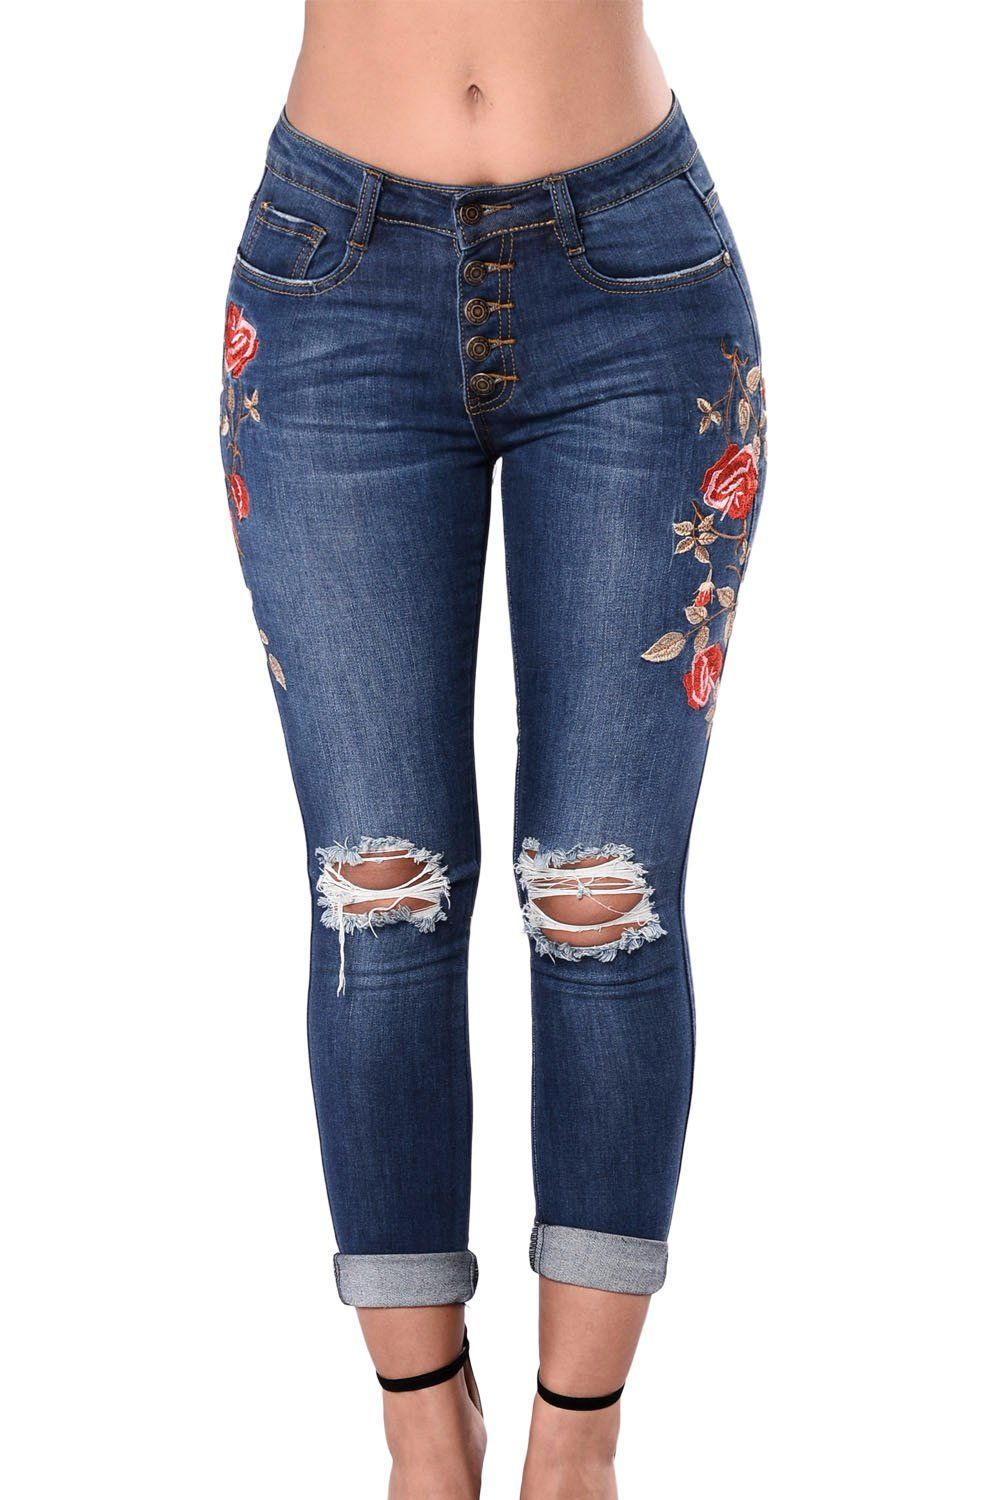 Chicloth floral embroidered knee distress skinny jeans